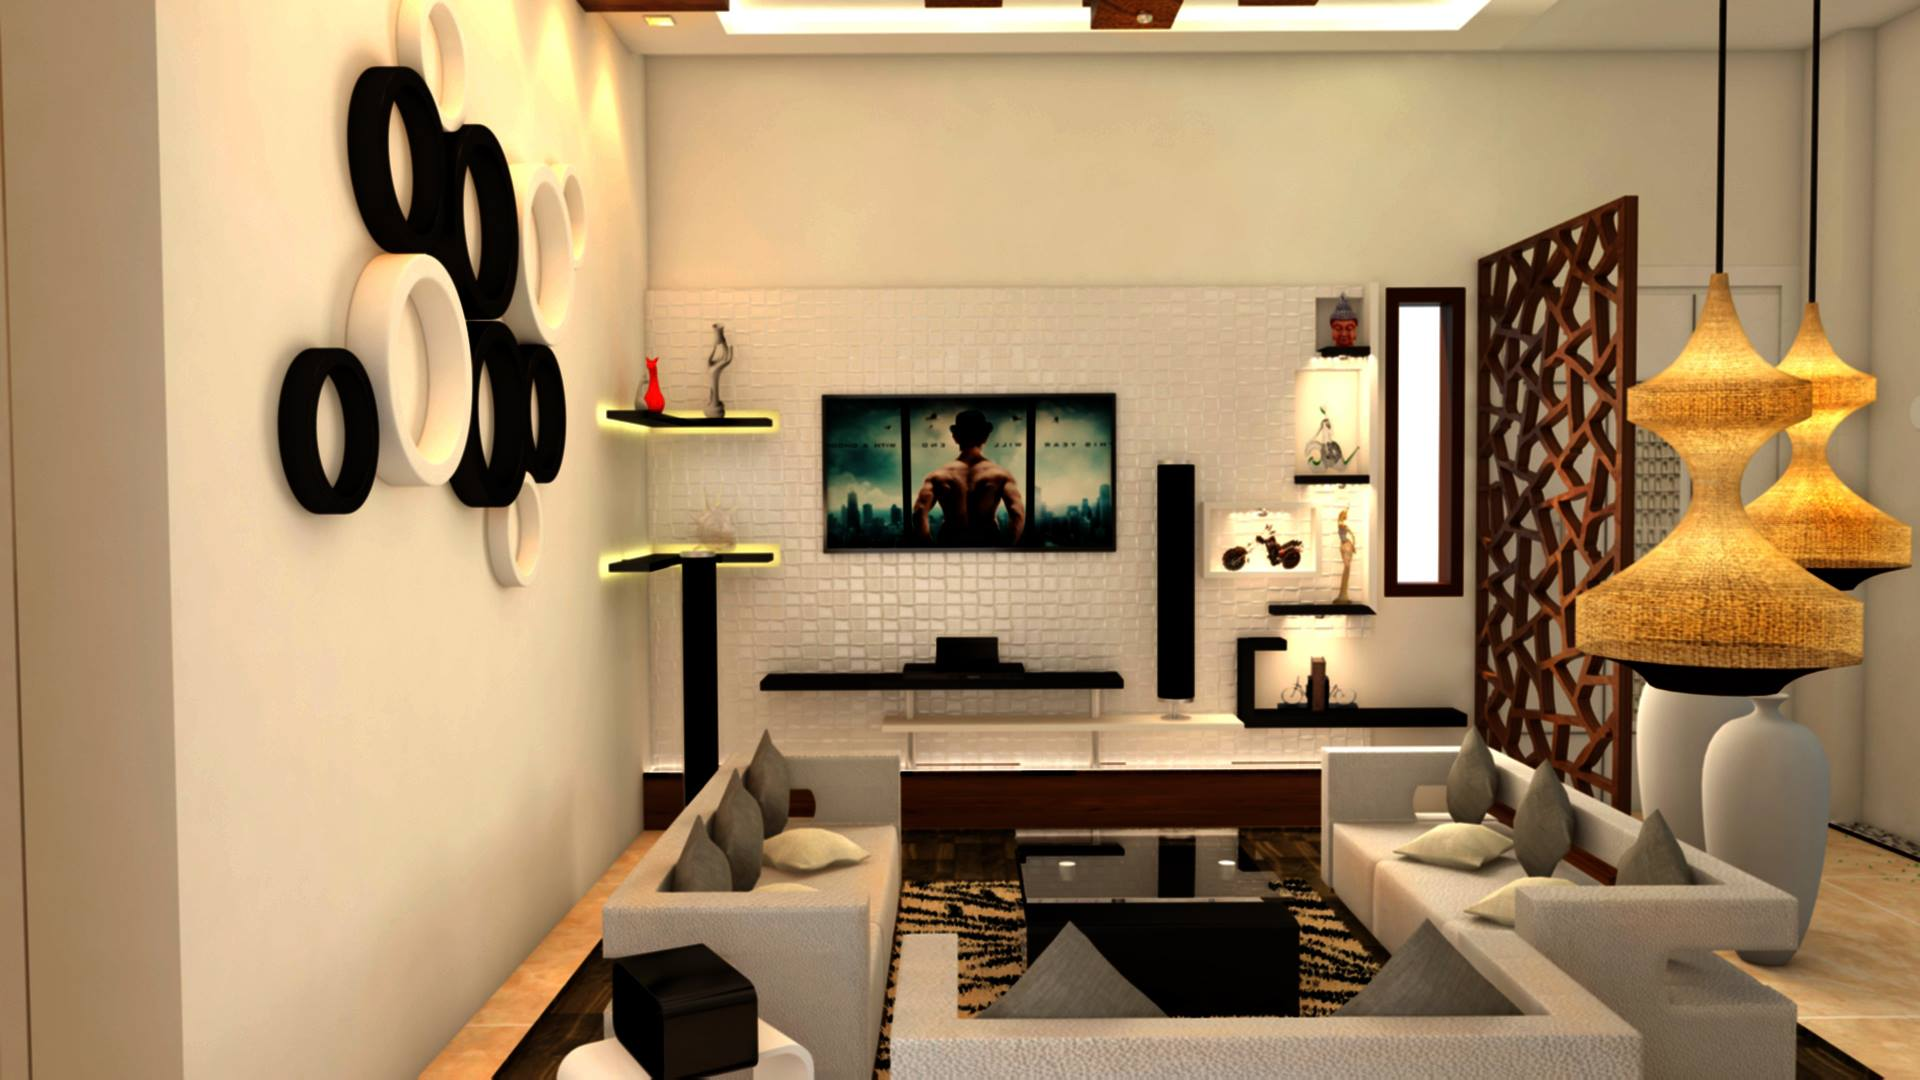 Bupesh seethala interior designer 3 d visualizer and for Home interior work